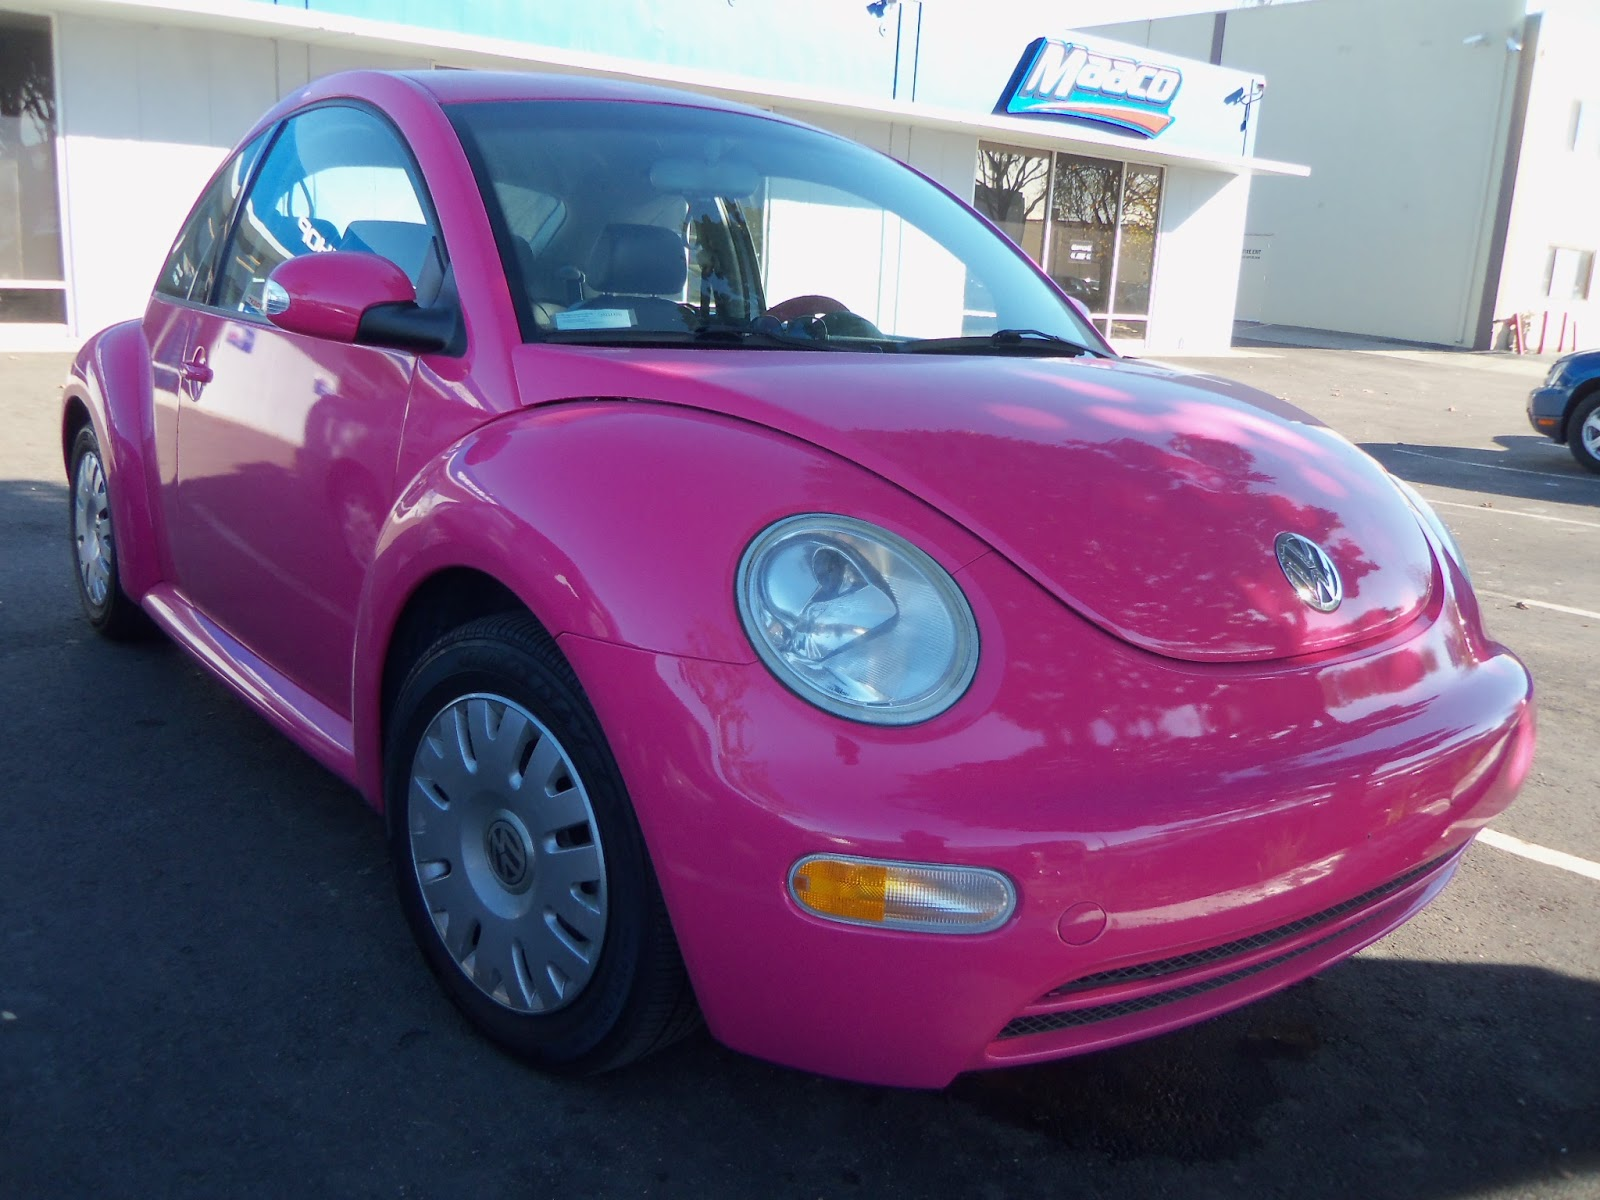 york auction volkswagen sells original herbie pink new news and sell top reviews beetle sale for speed cars at